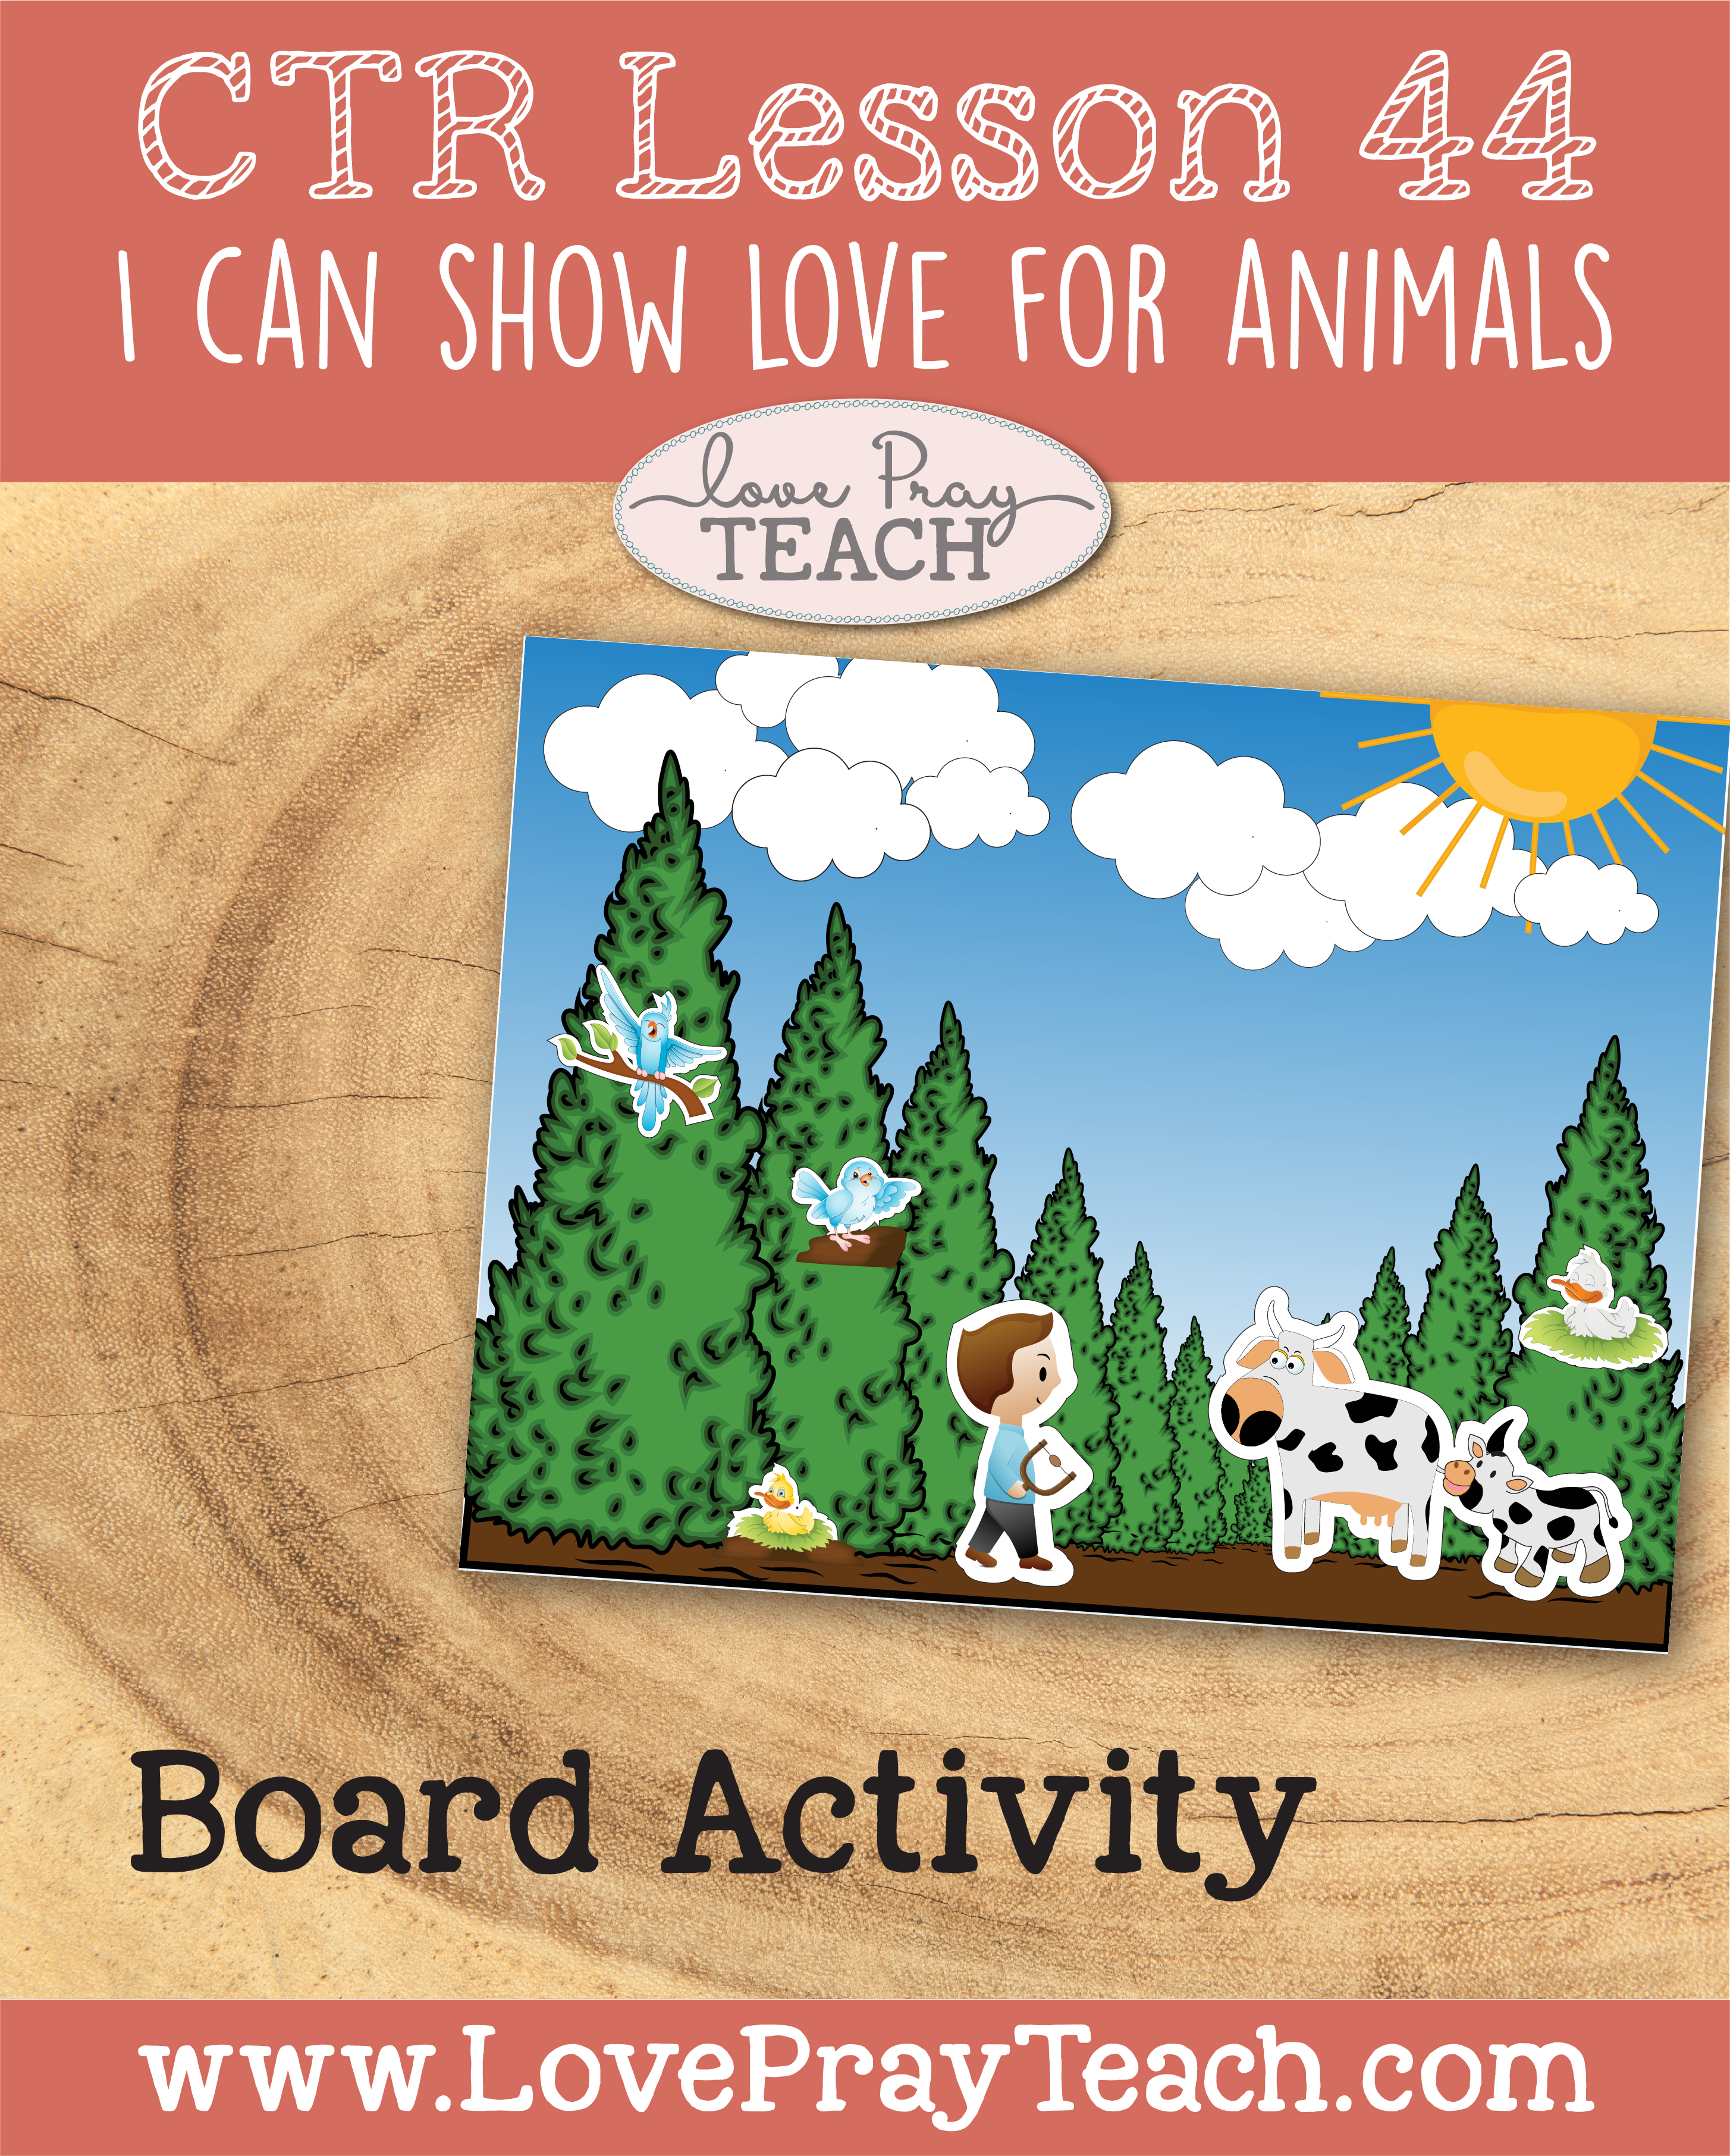 "LDS Primary 2 CTR Lesson 44: ""I Can Show Love for Animals"" Lesson Packet including Matching Game, Noah's Ark, Board Activity, Charade Cards, Coloring Activities, Additional Ideas from the Friend and more! www.LovePrayTeach.com"